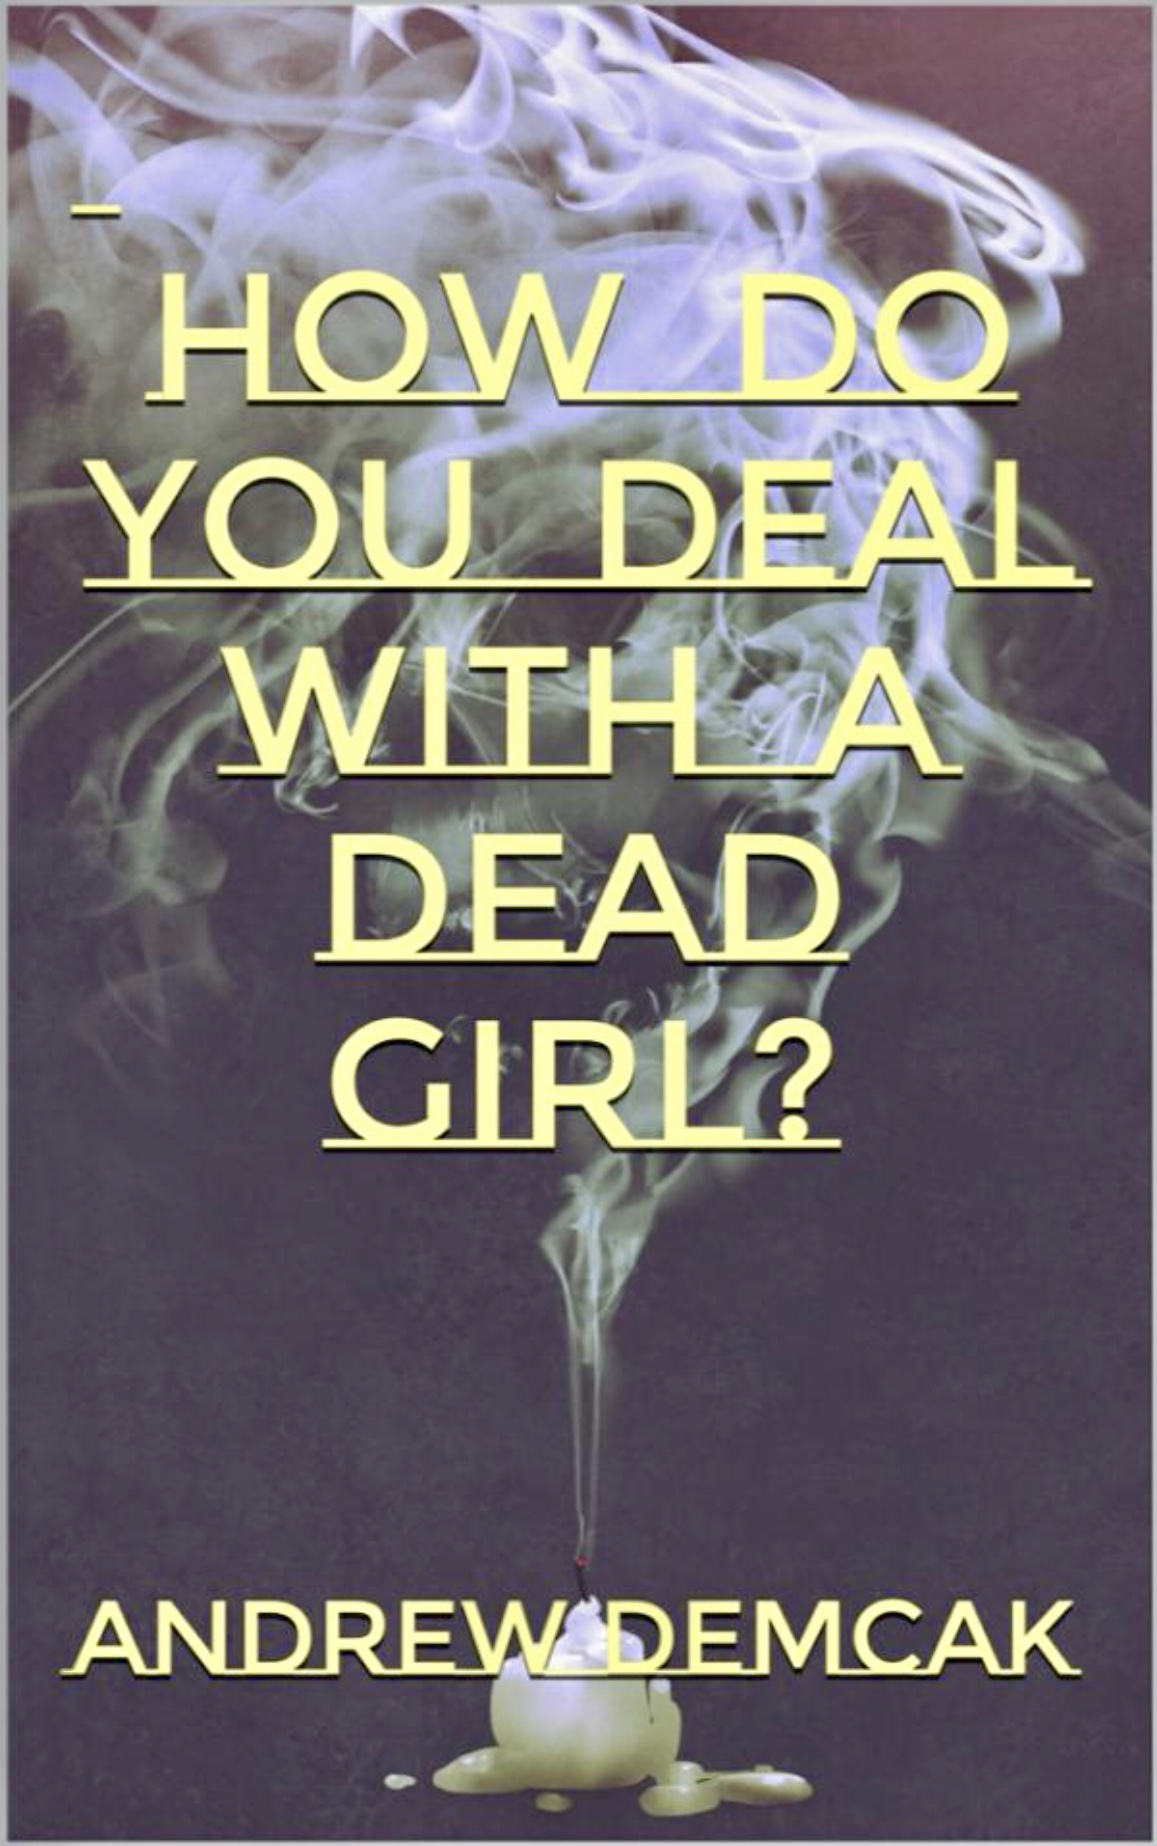 How Do You Deal With a Dead Girl - Andrew Demcak